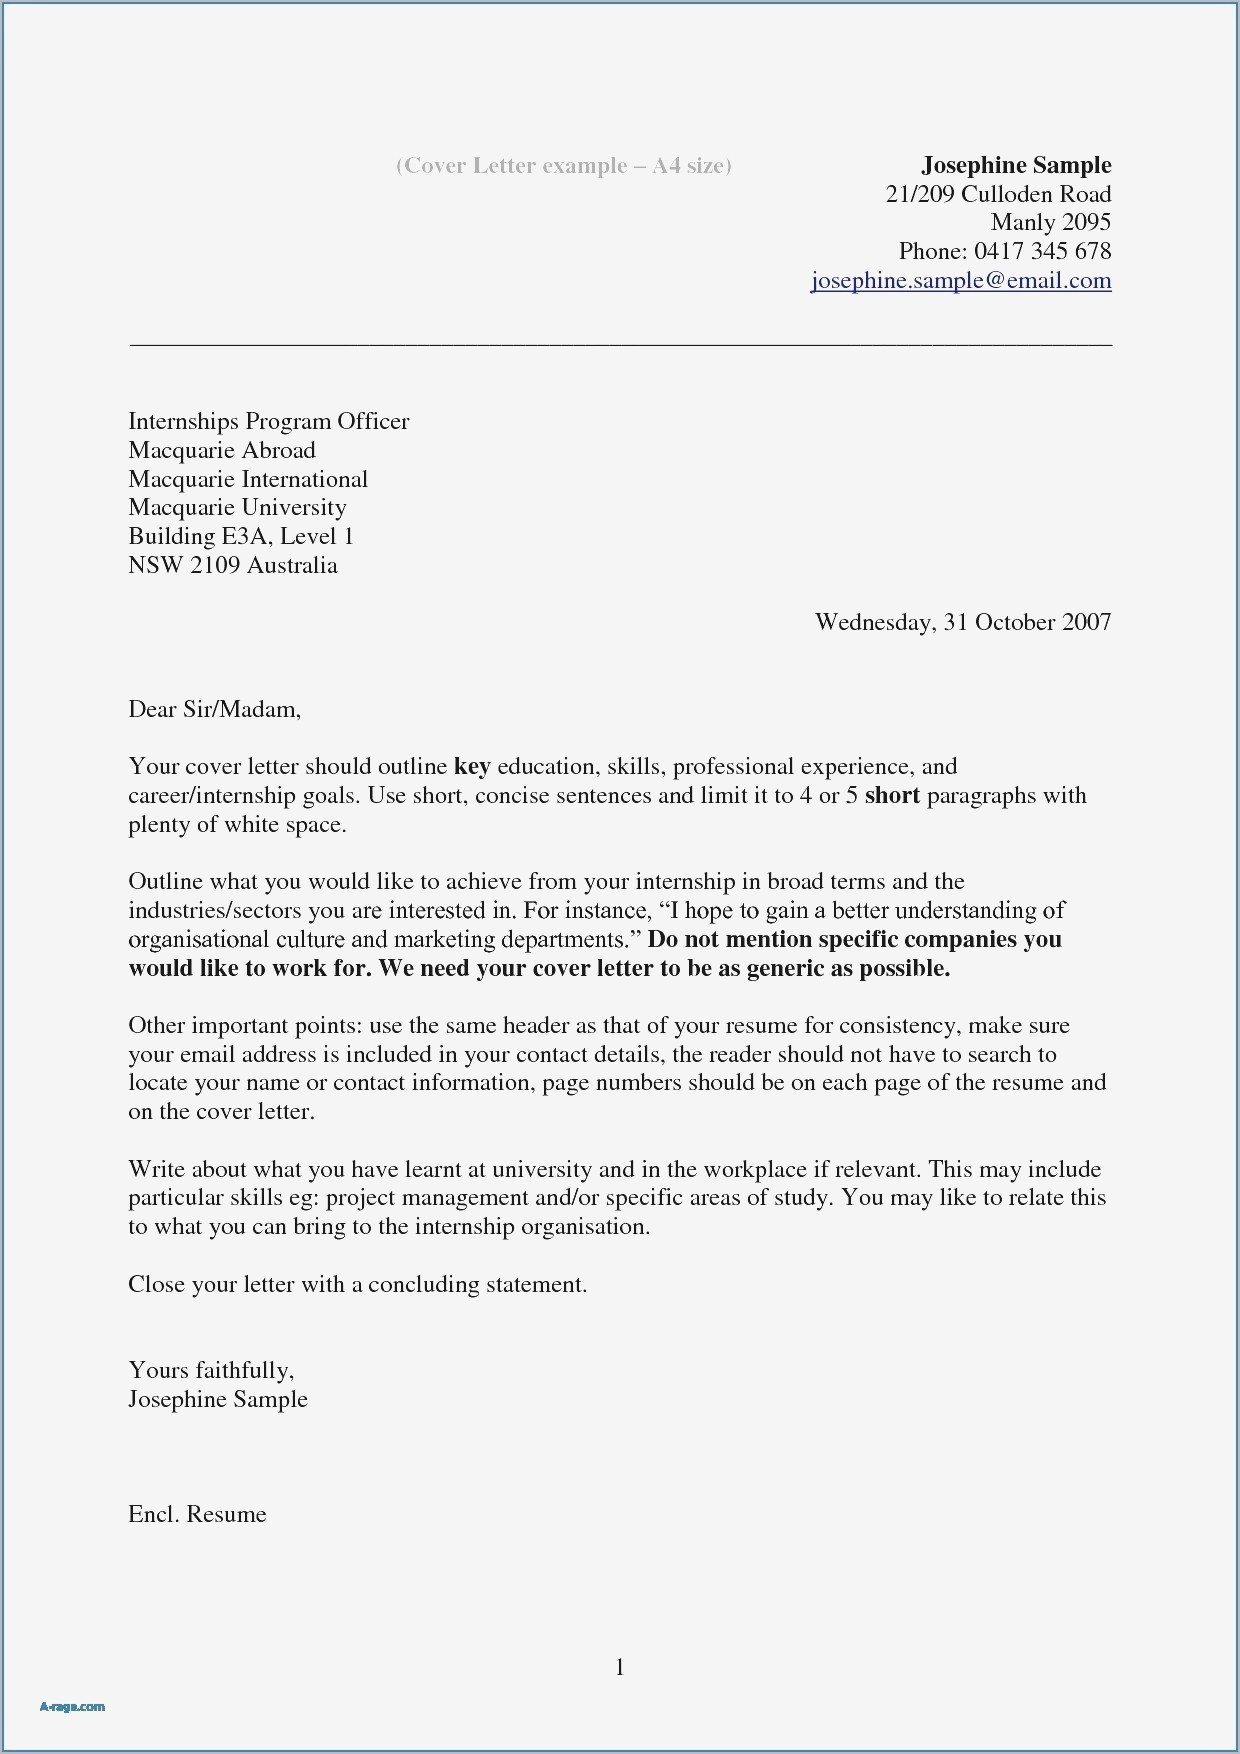 free letter of employment template Collection-Best Pr Resume Template Elegant Dictionary Template 0d Archives free resume cover letter 7-e